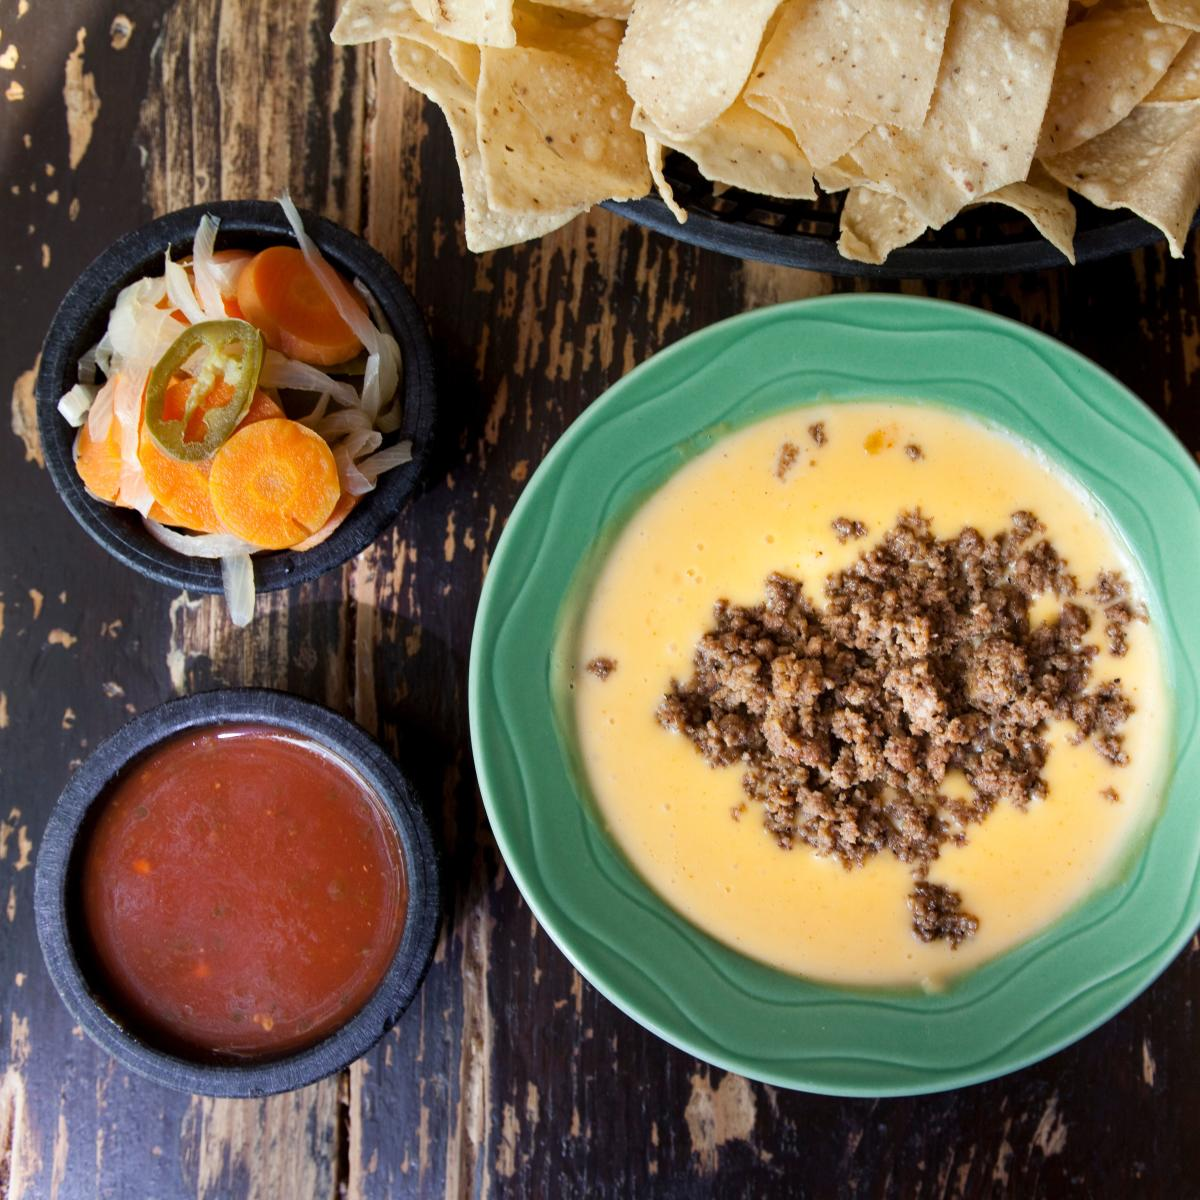 Jose's Dip at Molina's Cantina